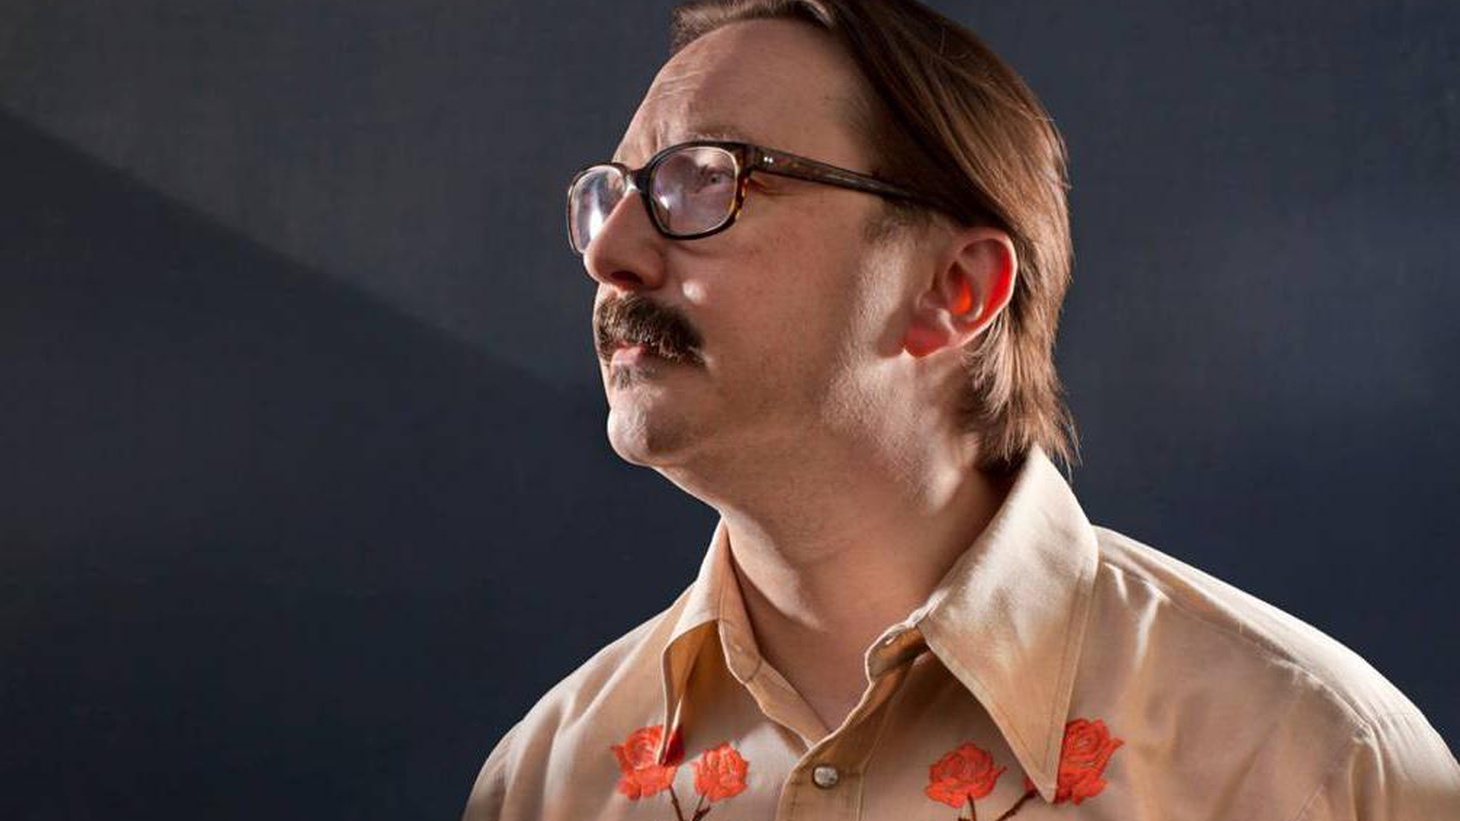 """In his Guest DJ set, Daily Show contributor, humorist and best-selling author John Hodgman tells us about the musician that motivates him as a writer, one of the finest MCs he's ever heard and shares a track from the leading purveyor of """"geek rock"""". John will be at appearing at the San Francisco Comedy Festival later this month and recently released a book called """"That is All""""."""